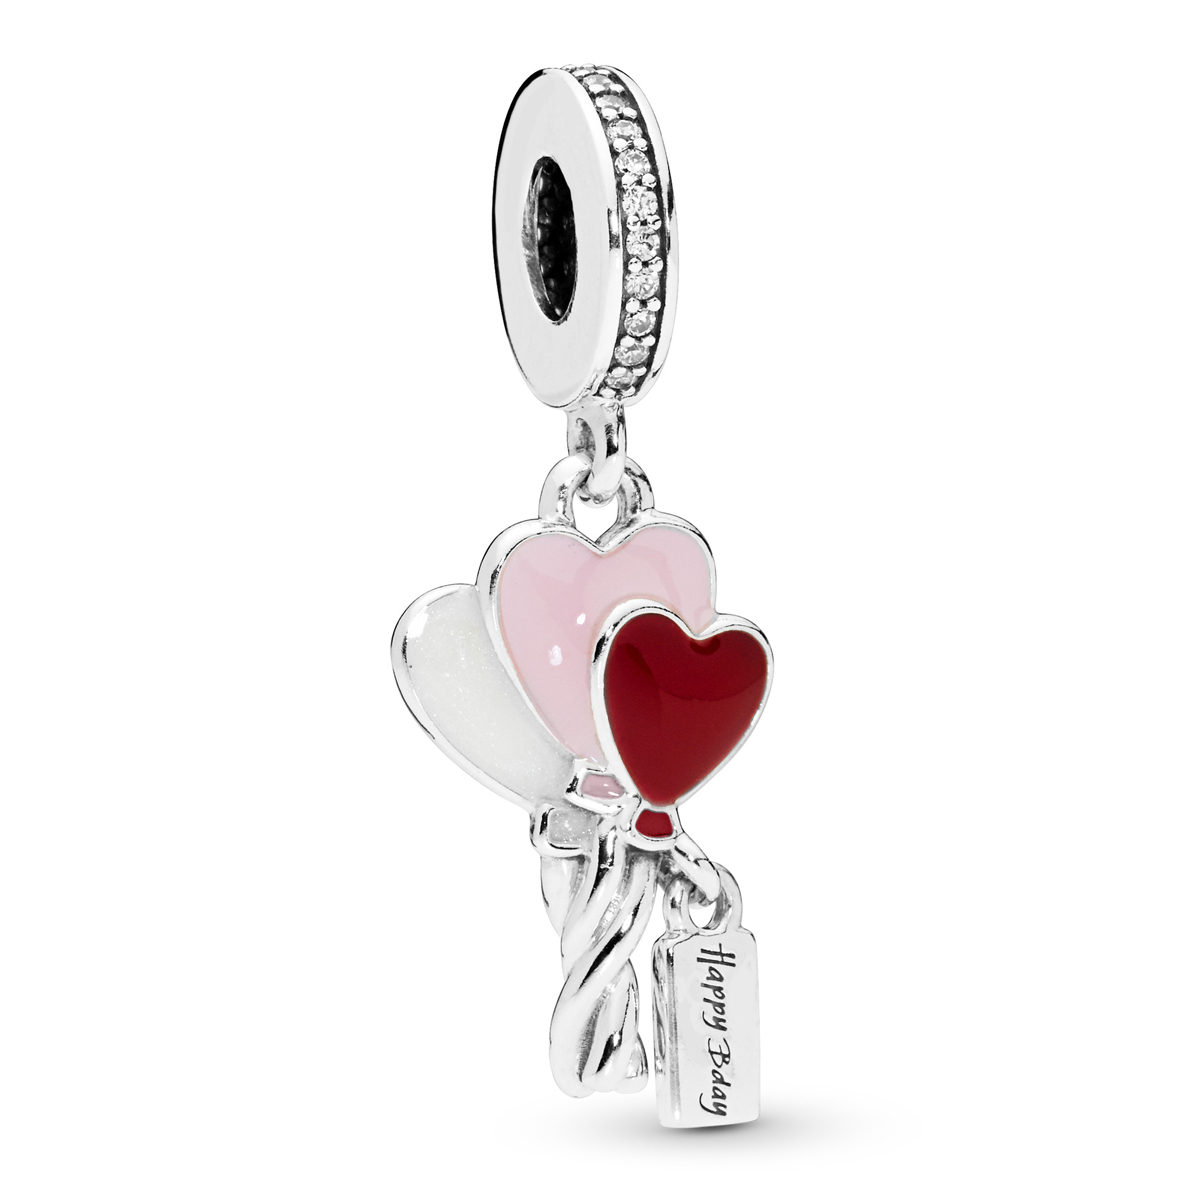 7c264a753 PANDORA Heart Balloons Dangle Charm 798076CZ ...